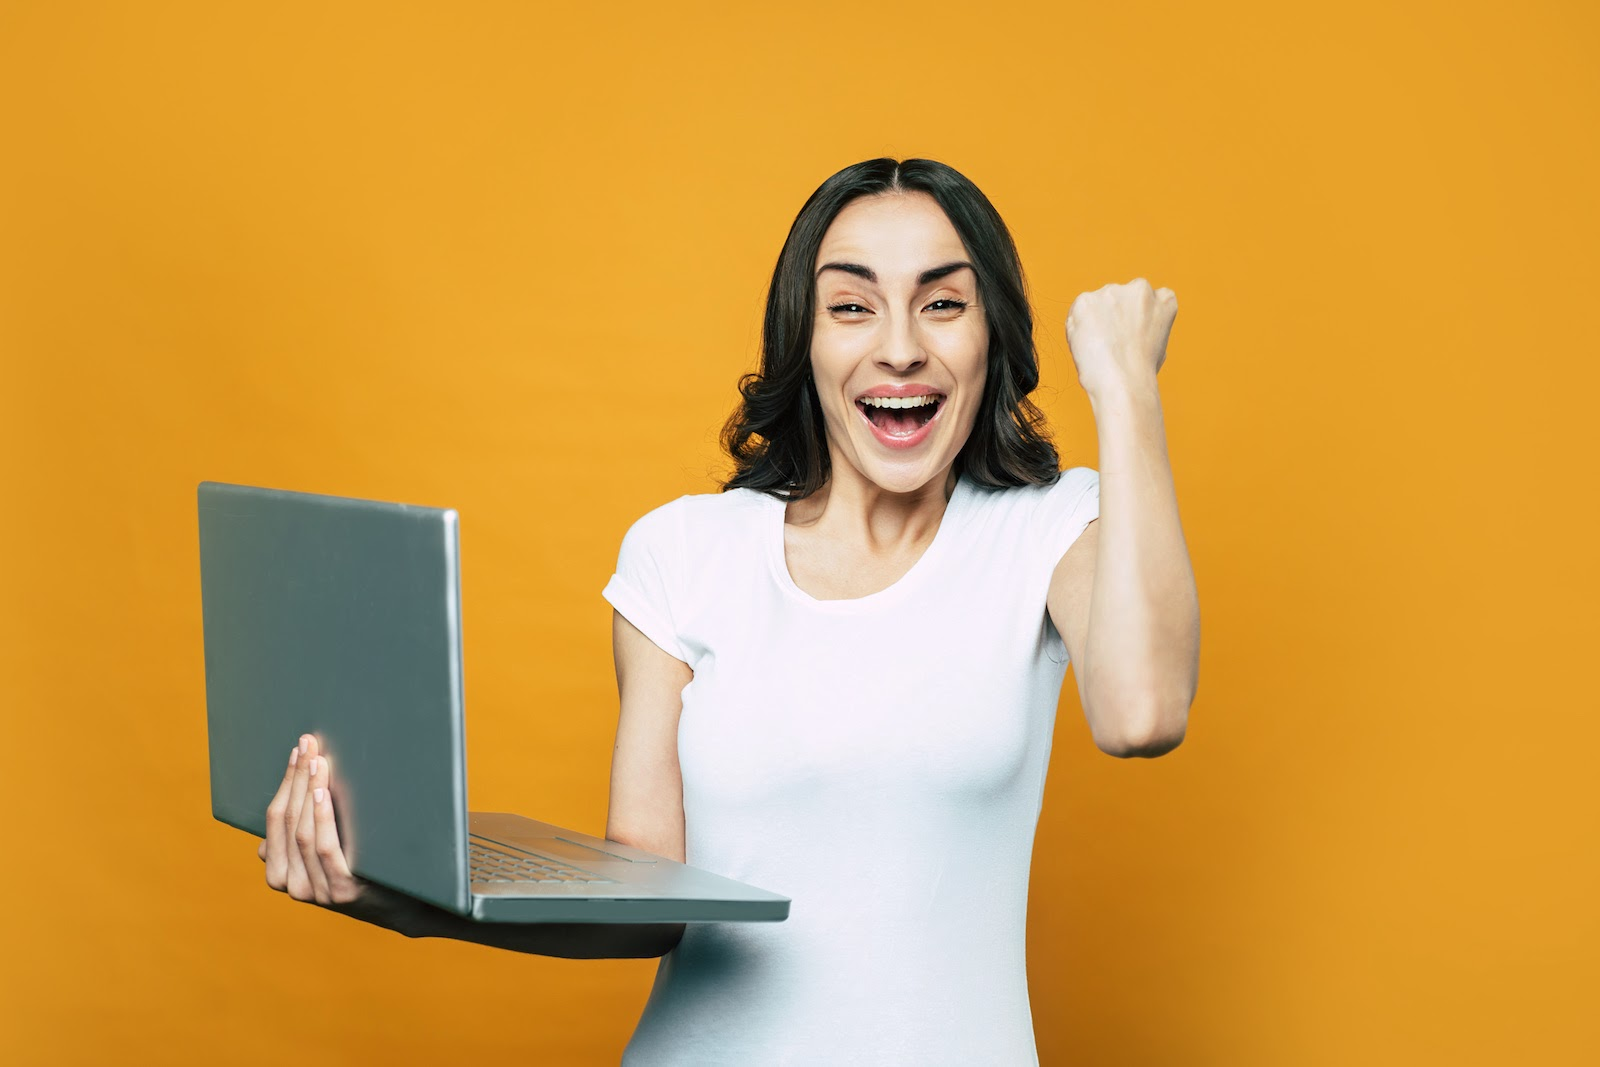 A woman looks happy about her recent virtual sales win